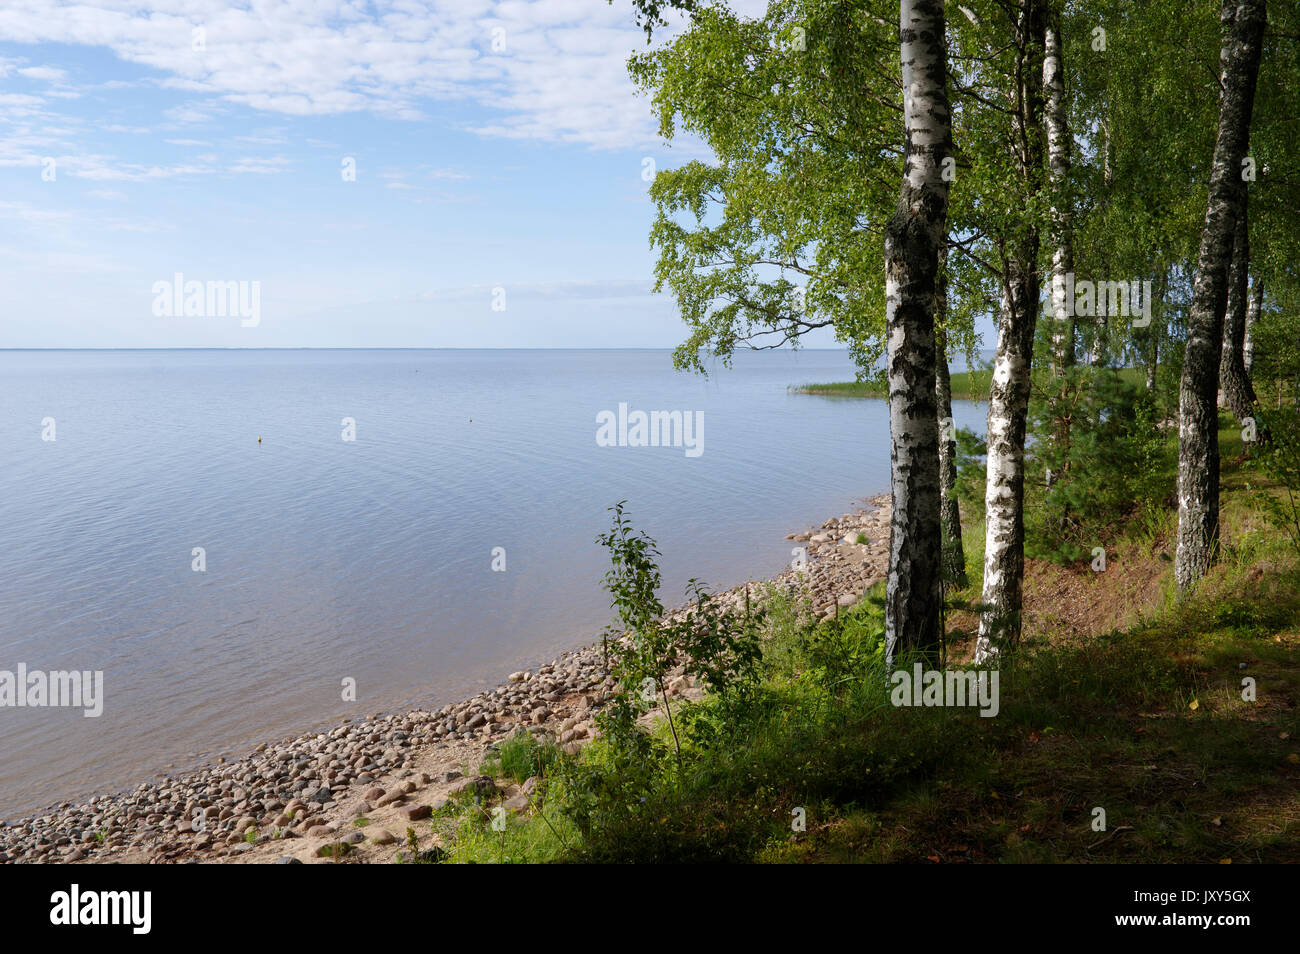 View to the Lake Võrtsjärv, Estonia 16.08.2017 Stock Photo